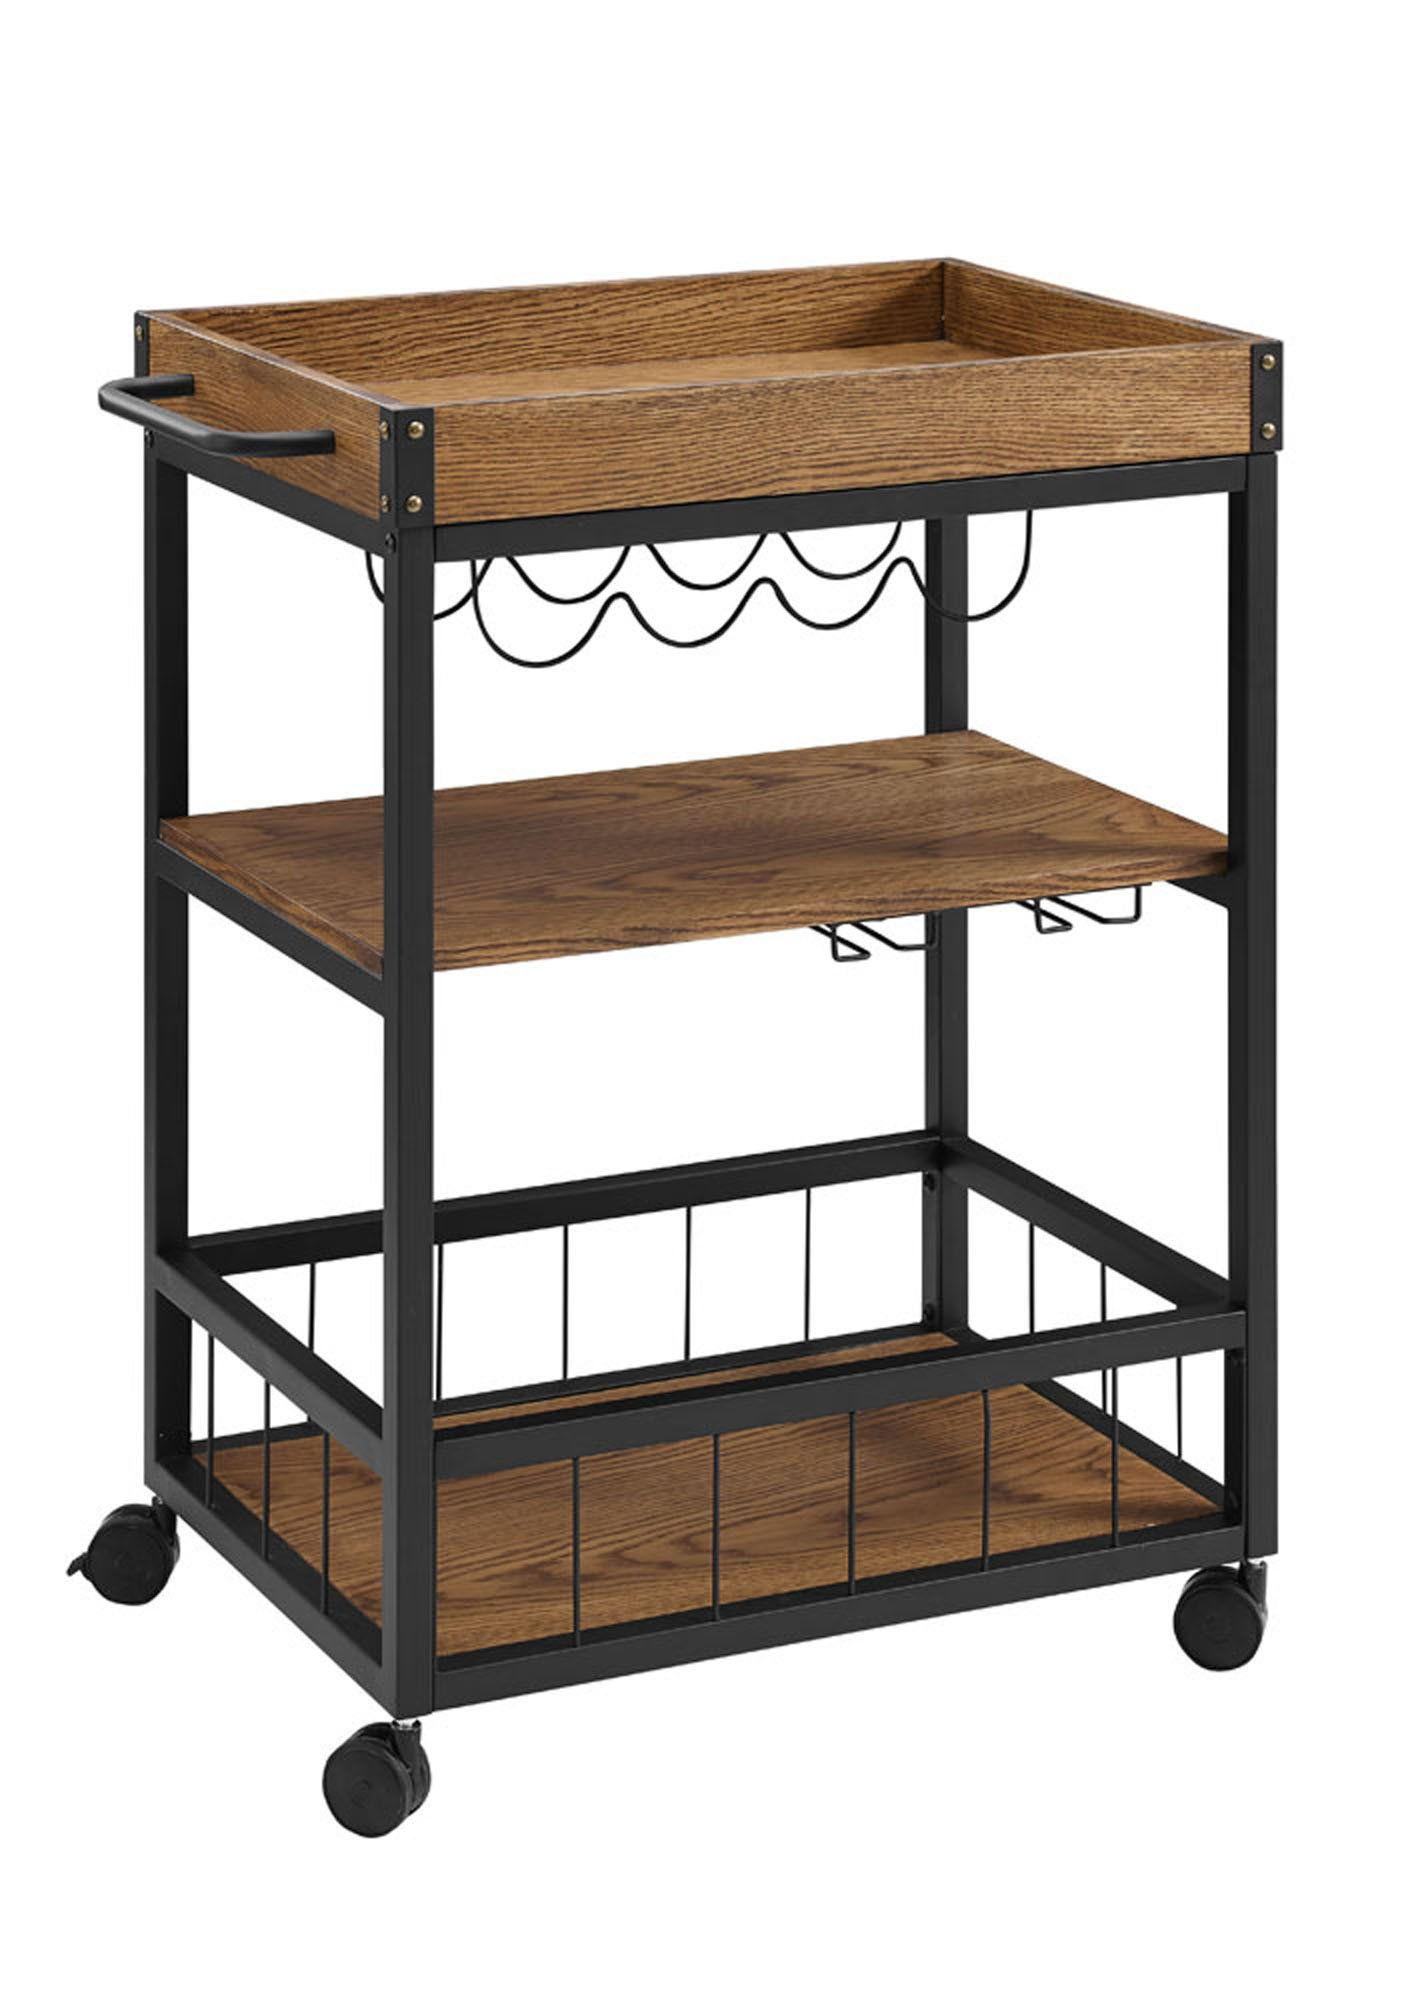 Linon 464908MTL01U Austin Kitchen Cart, 30.5'' W x 18.13'' D x 36.25'' H, Black by Linon